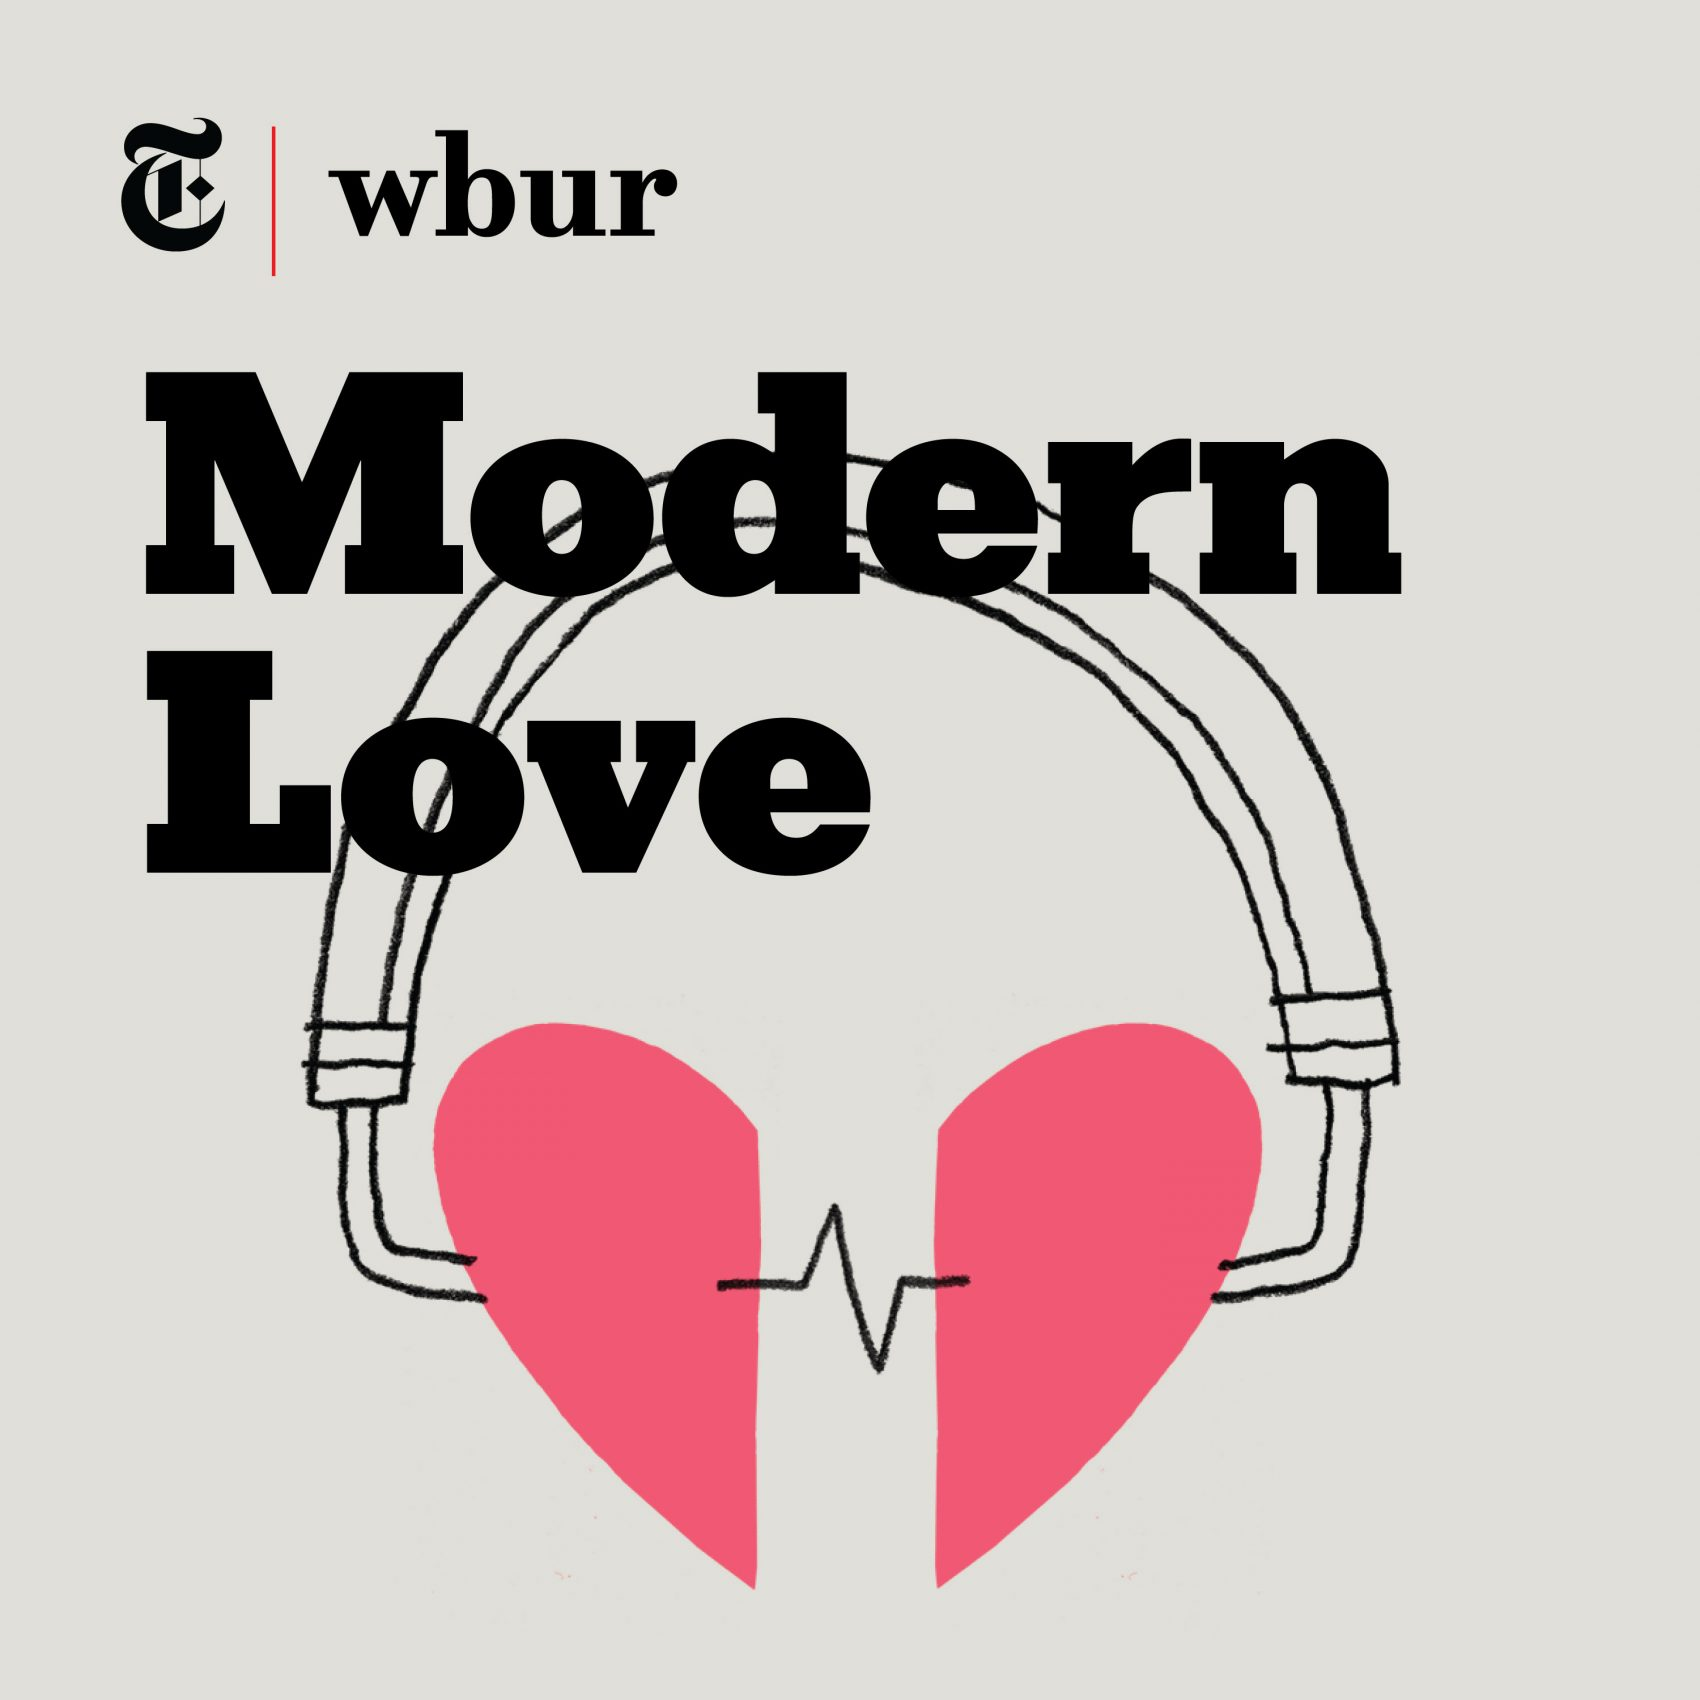 Modern Love - The New York Times column written by everyday people, read by actors. Explores all aspects of contemporary relationships. Listen